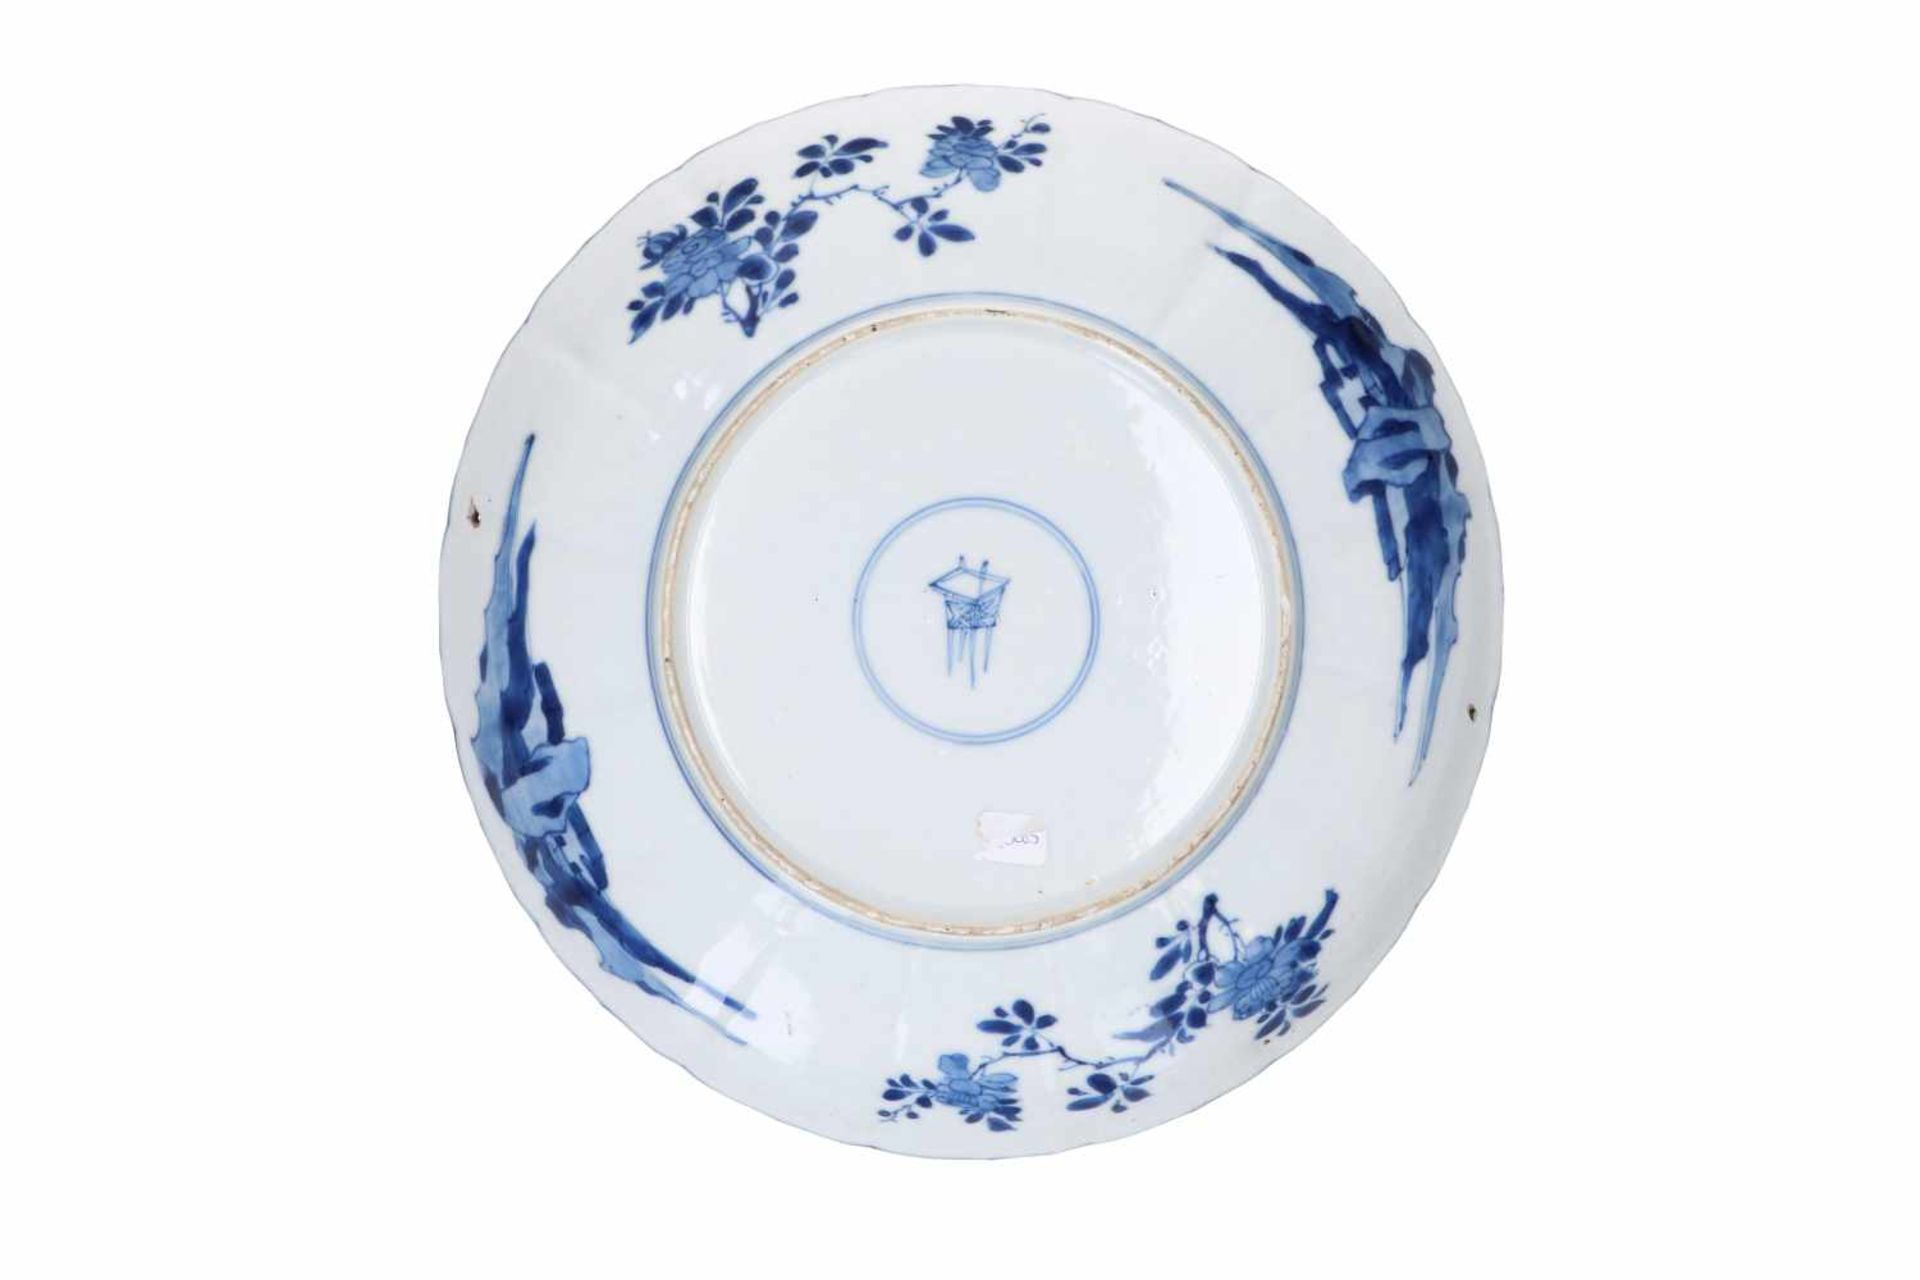 A blue and white porcelain dish with scalloped rim, decorated with ladies in a garden and flowers. - Bild 5 aus 5